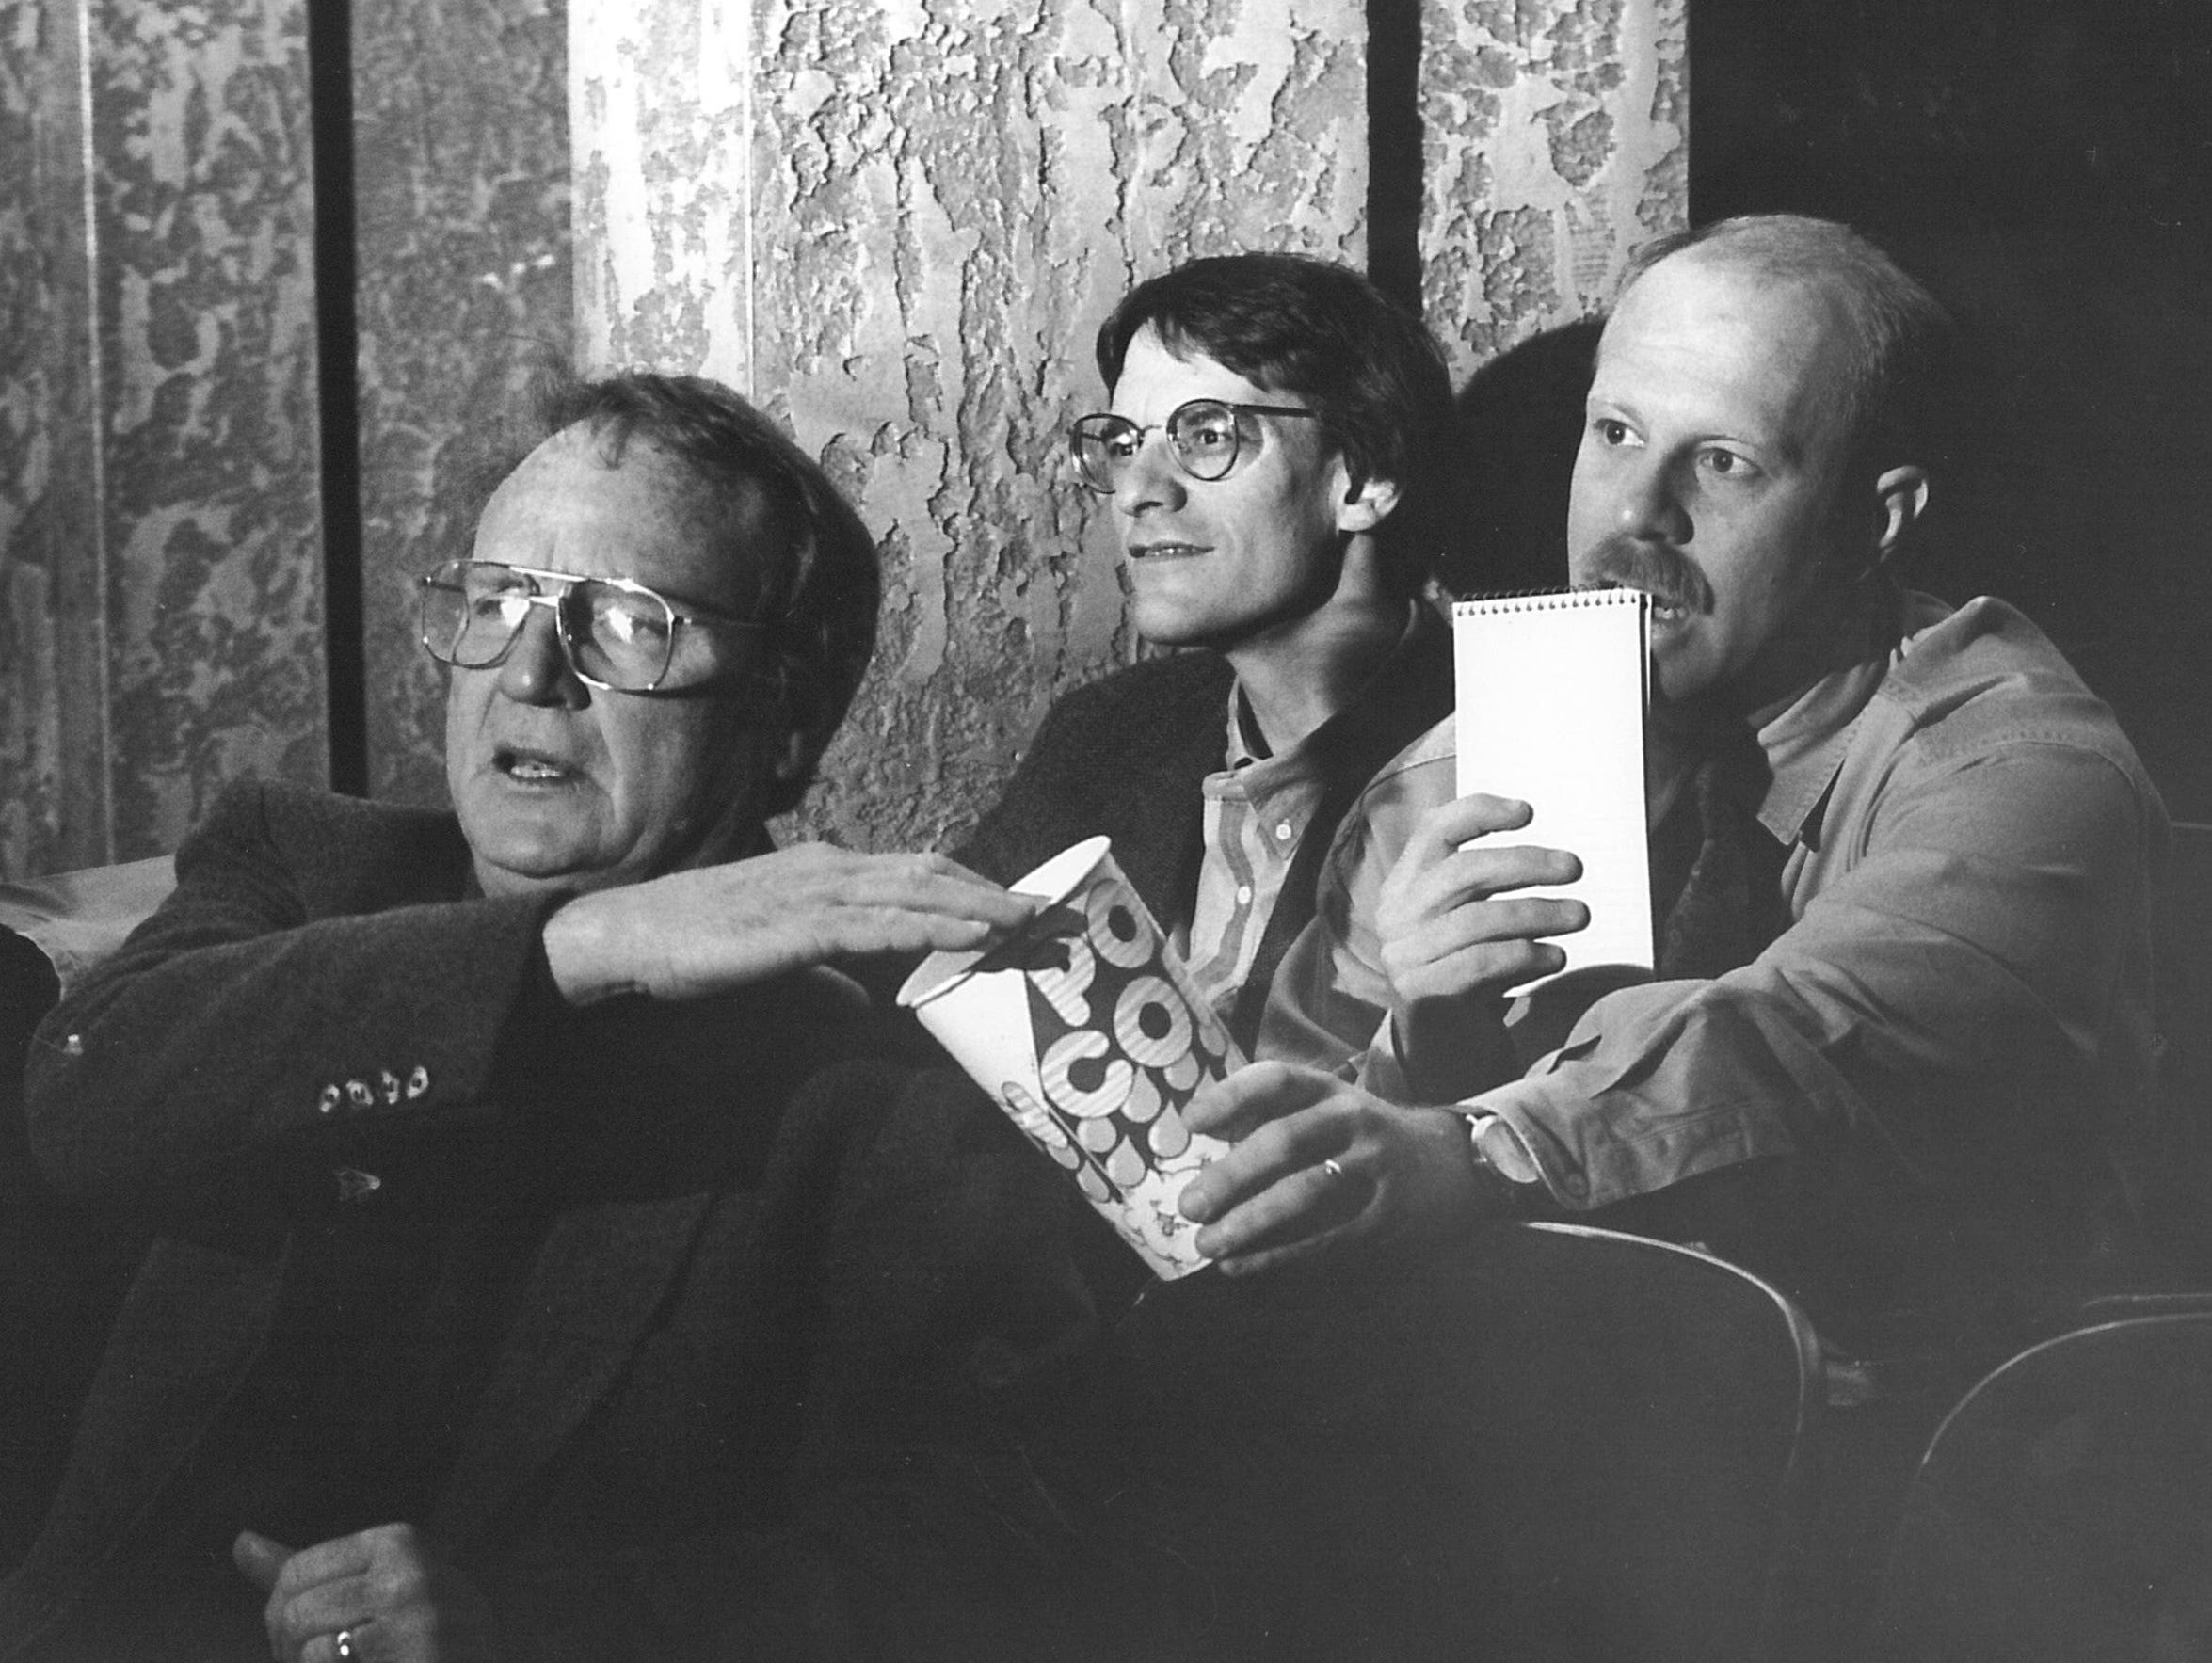 The three movie amigos, circa 1994: Bob Lapham, Richard